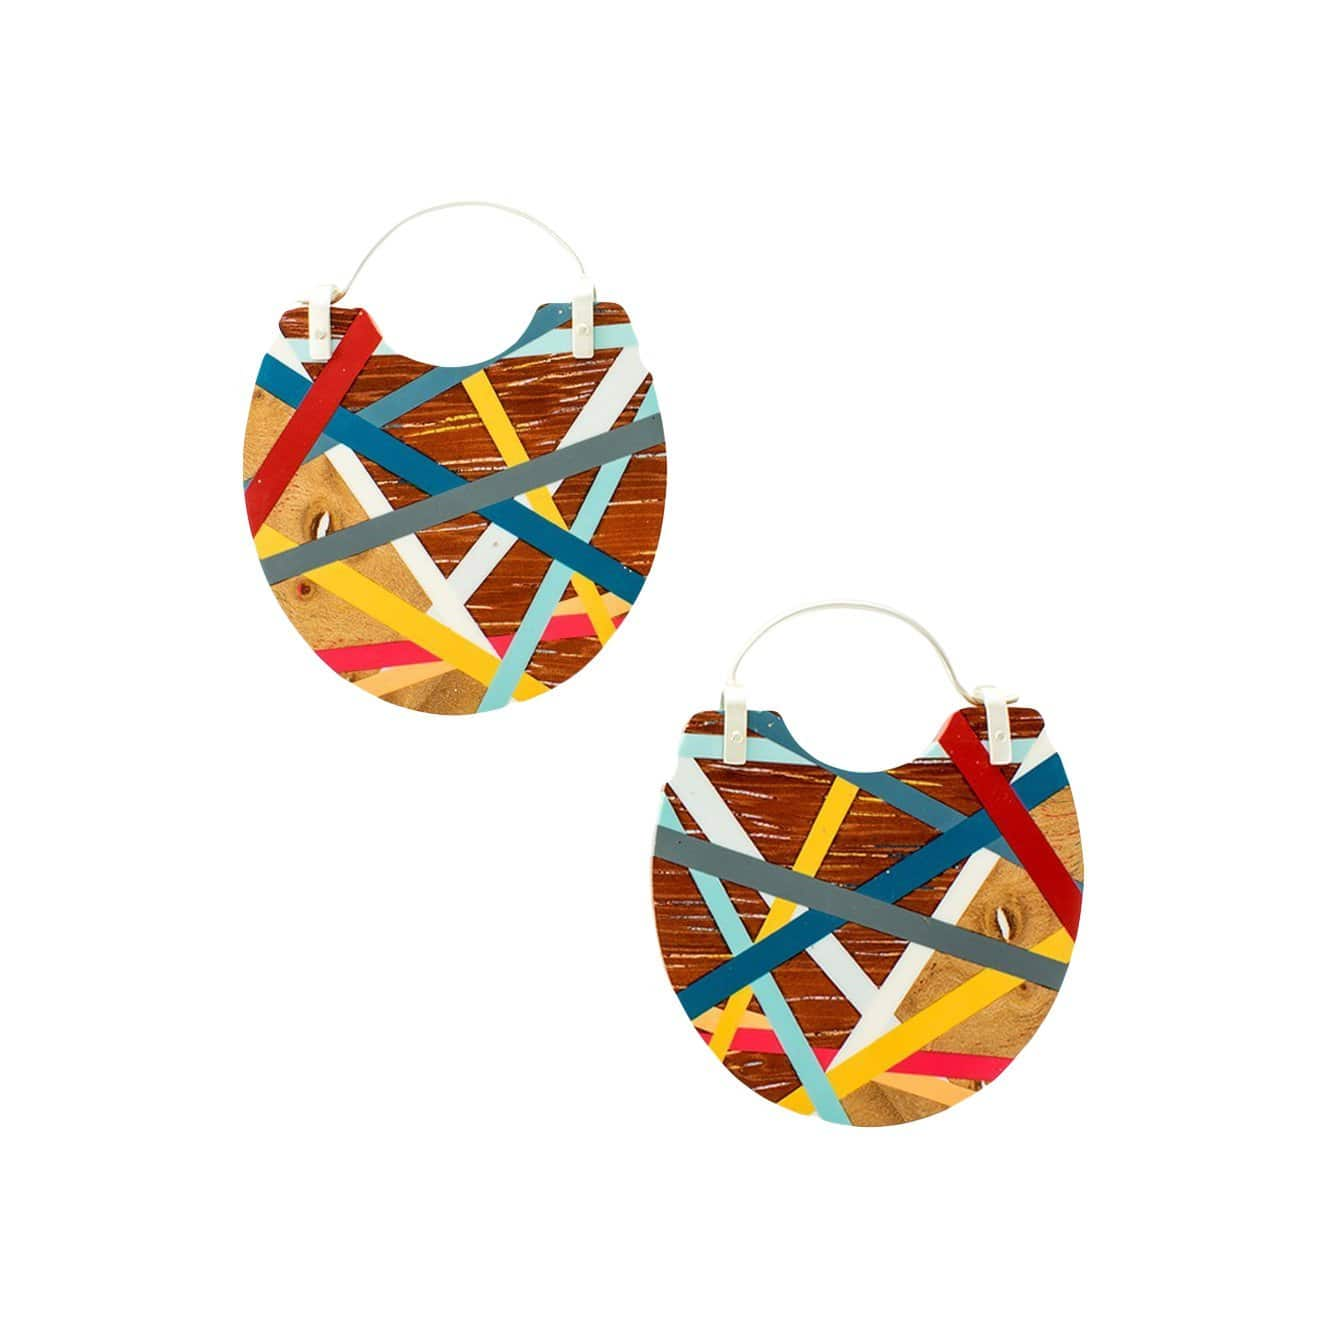 Laura Jaklitsch Jewelry Earrings Primary Color Maple and Padauk Wood with Inlay Hoop Earrings